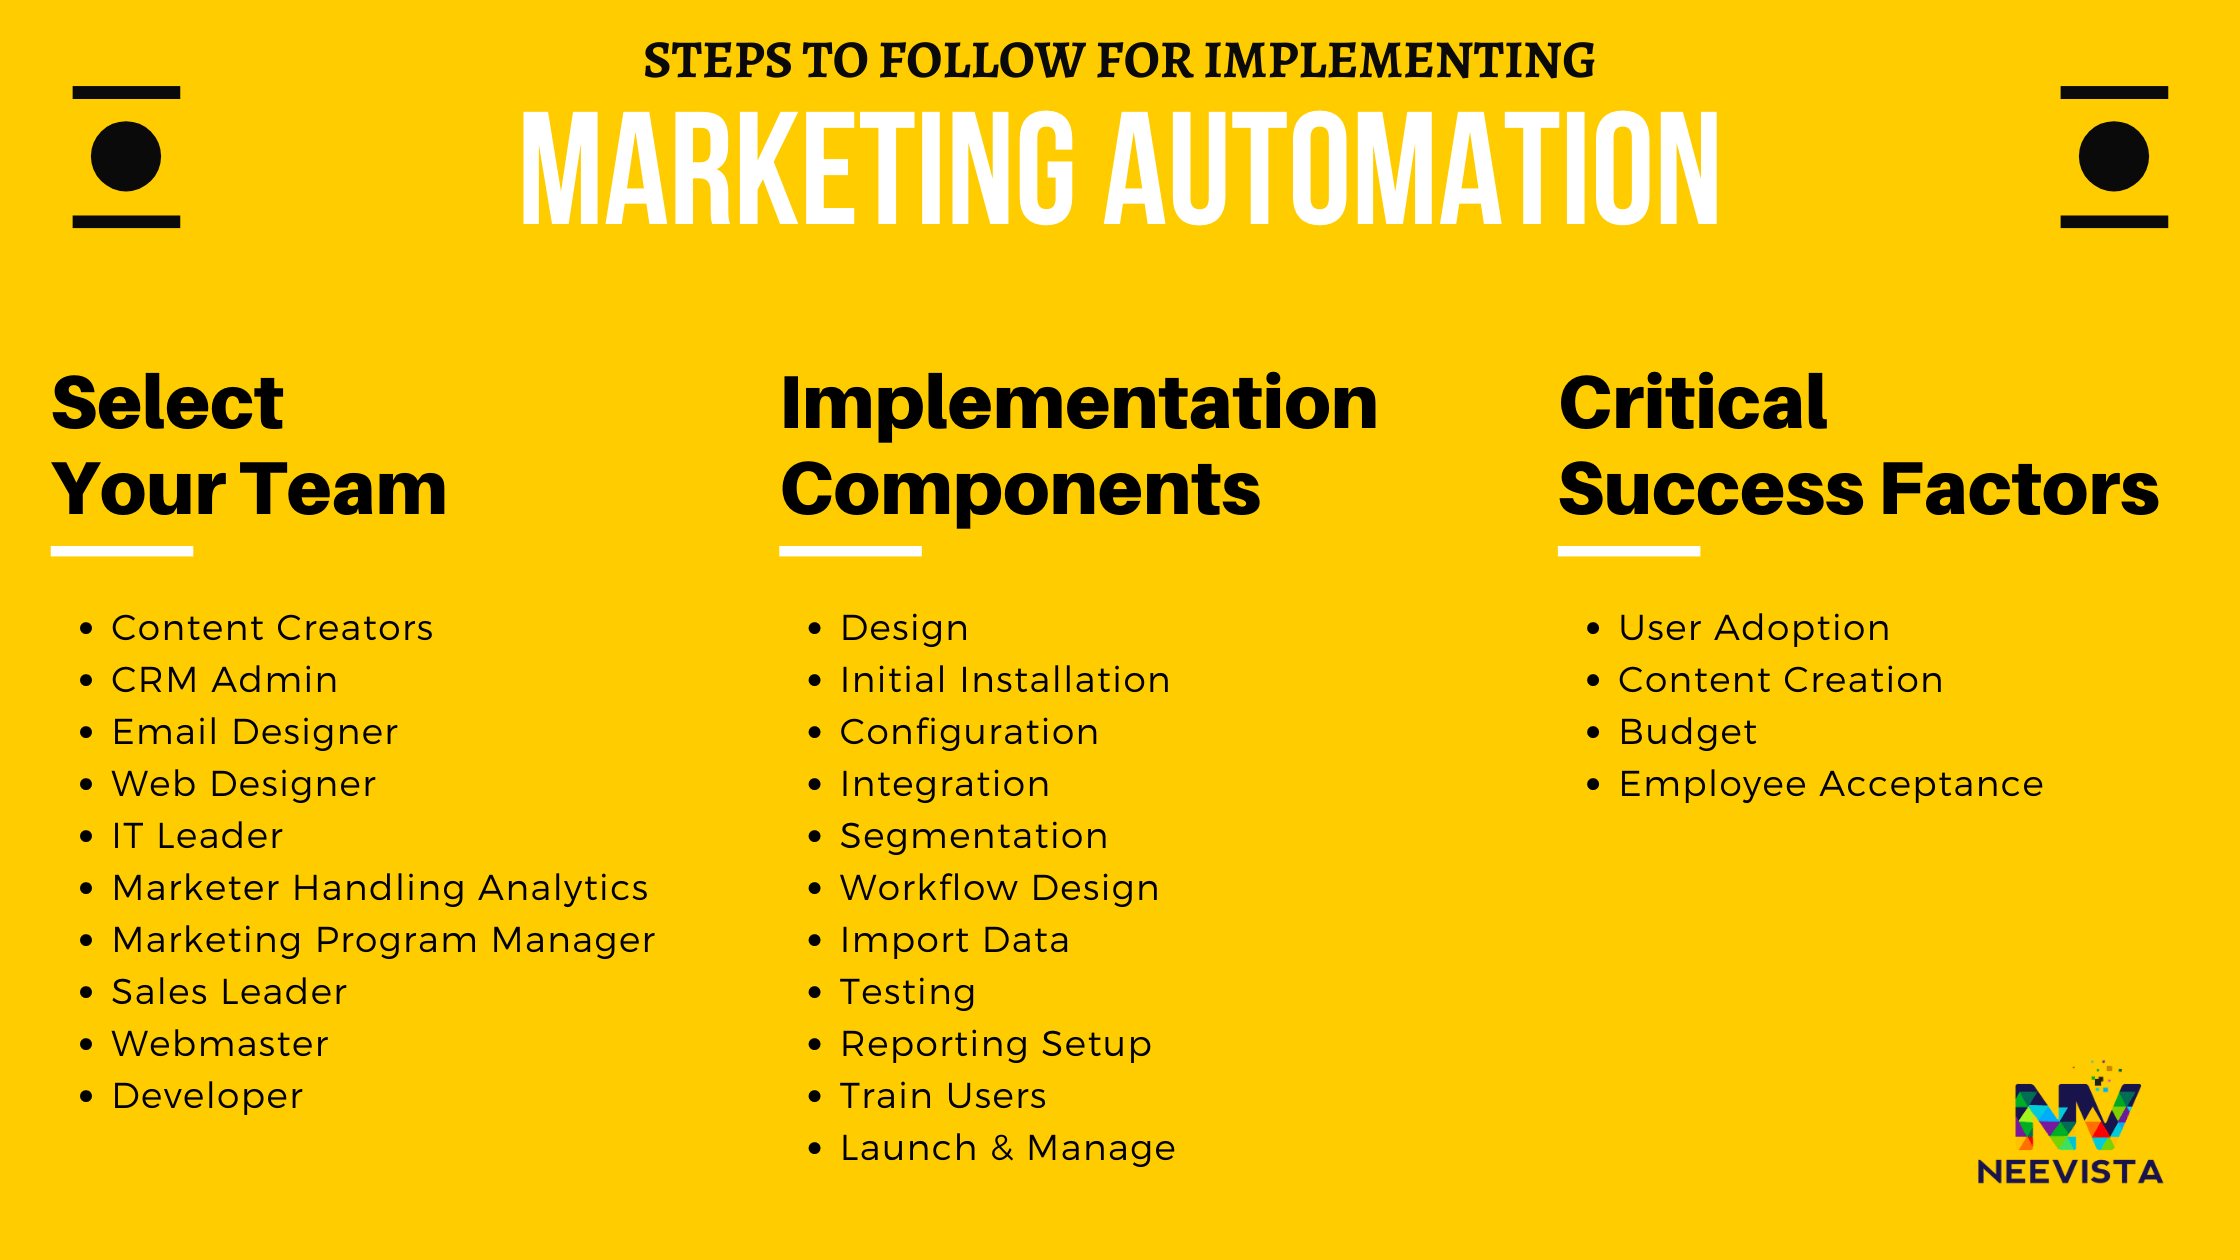 Steps to follow for implementing marketing automation